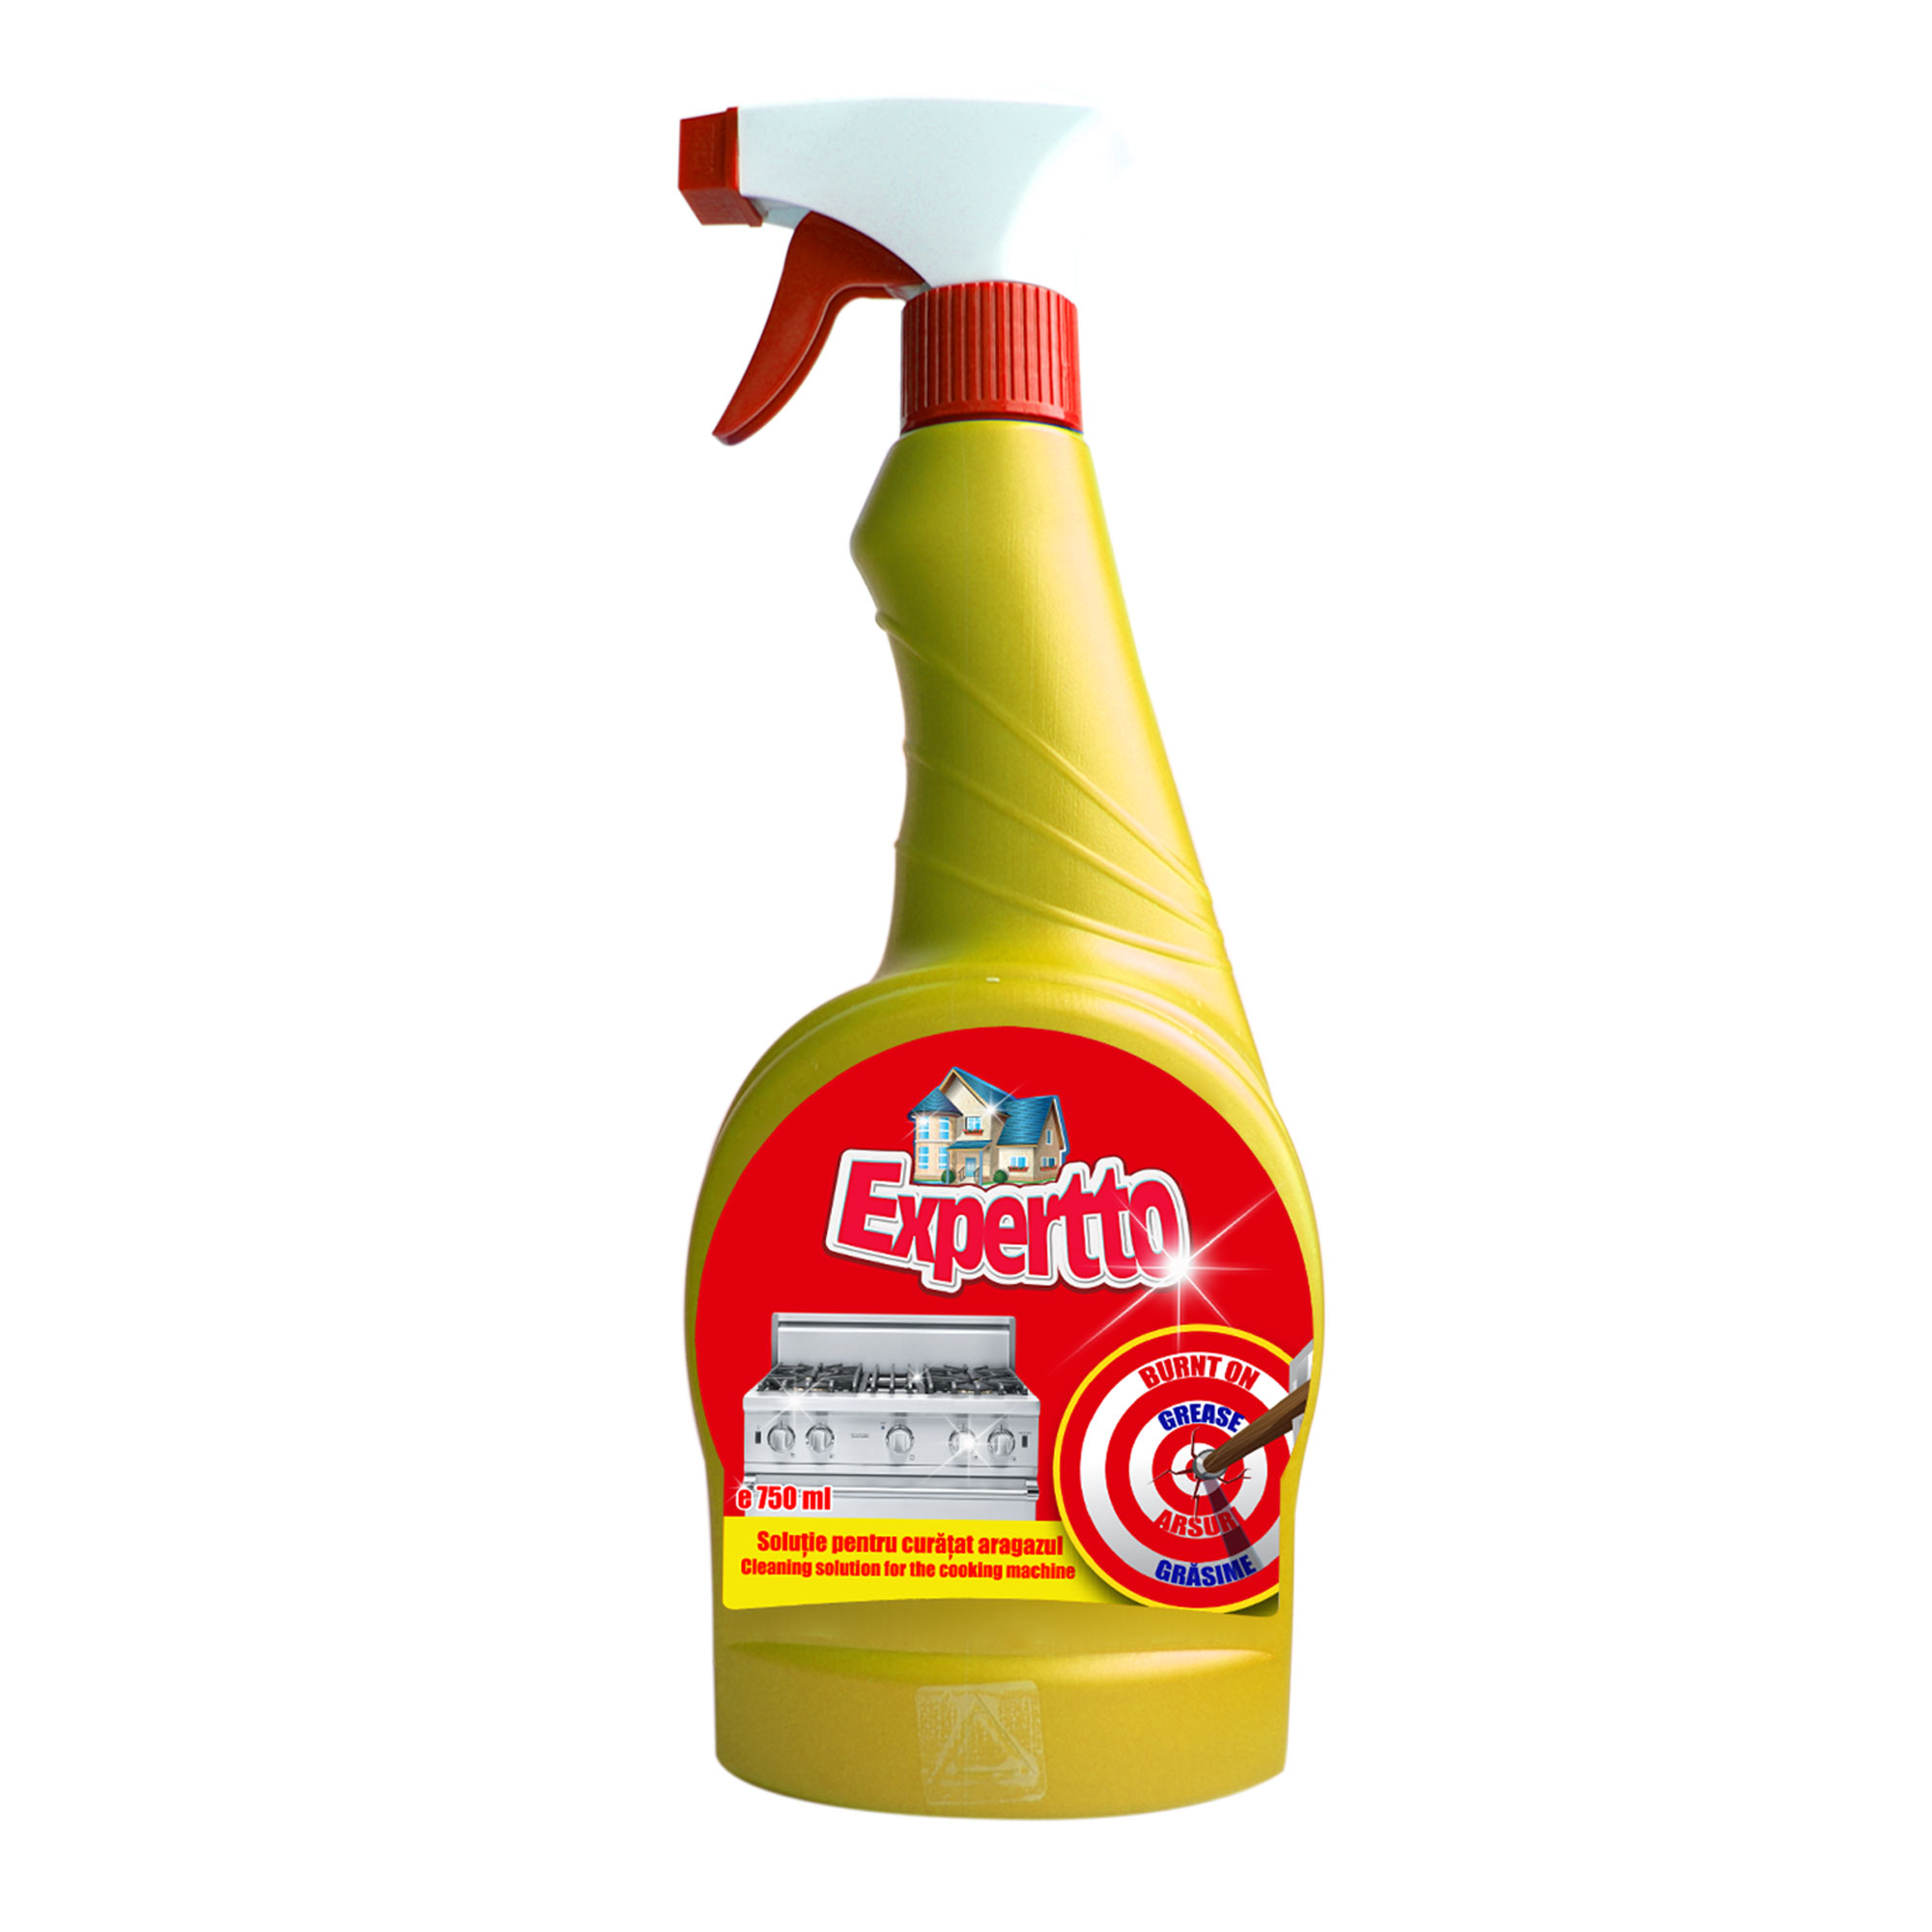 Expertto Cooking Machine Cleaning Solution